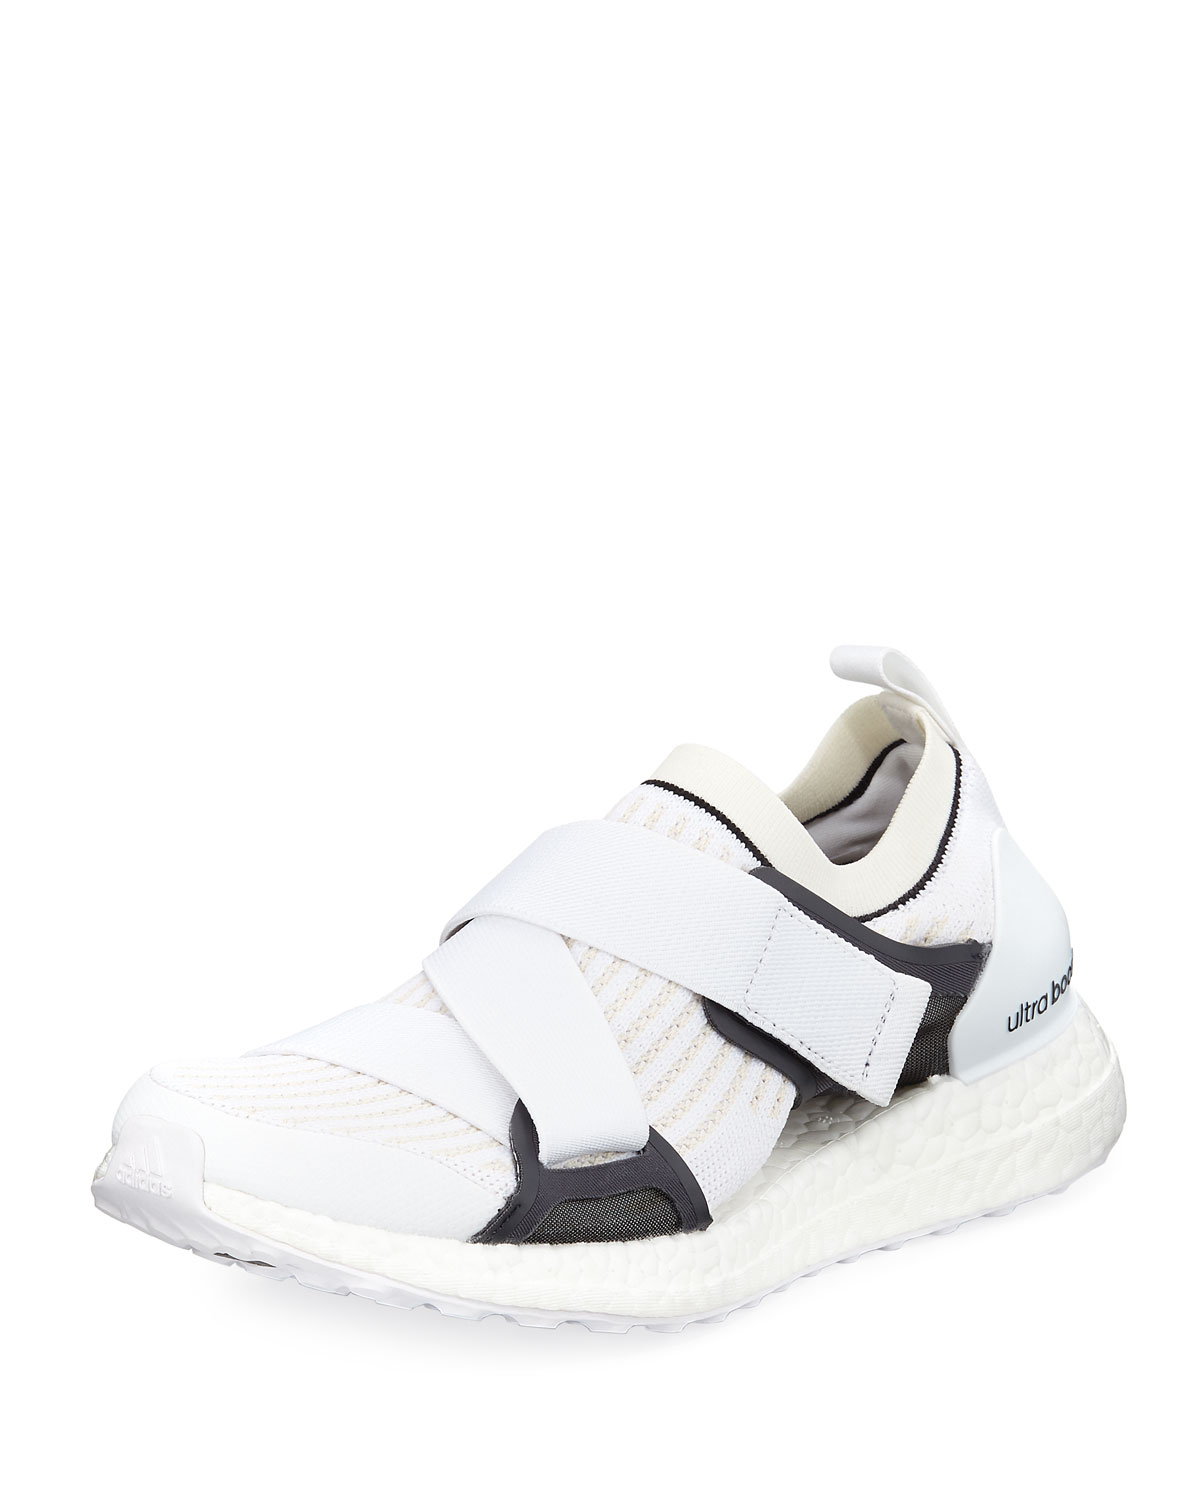 9de3f128e3698 adidas by Stella McCartney Ultra Boost X Fabric Sneakers